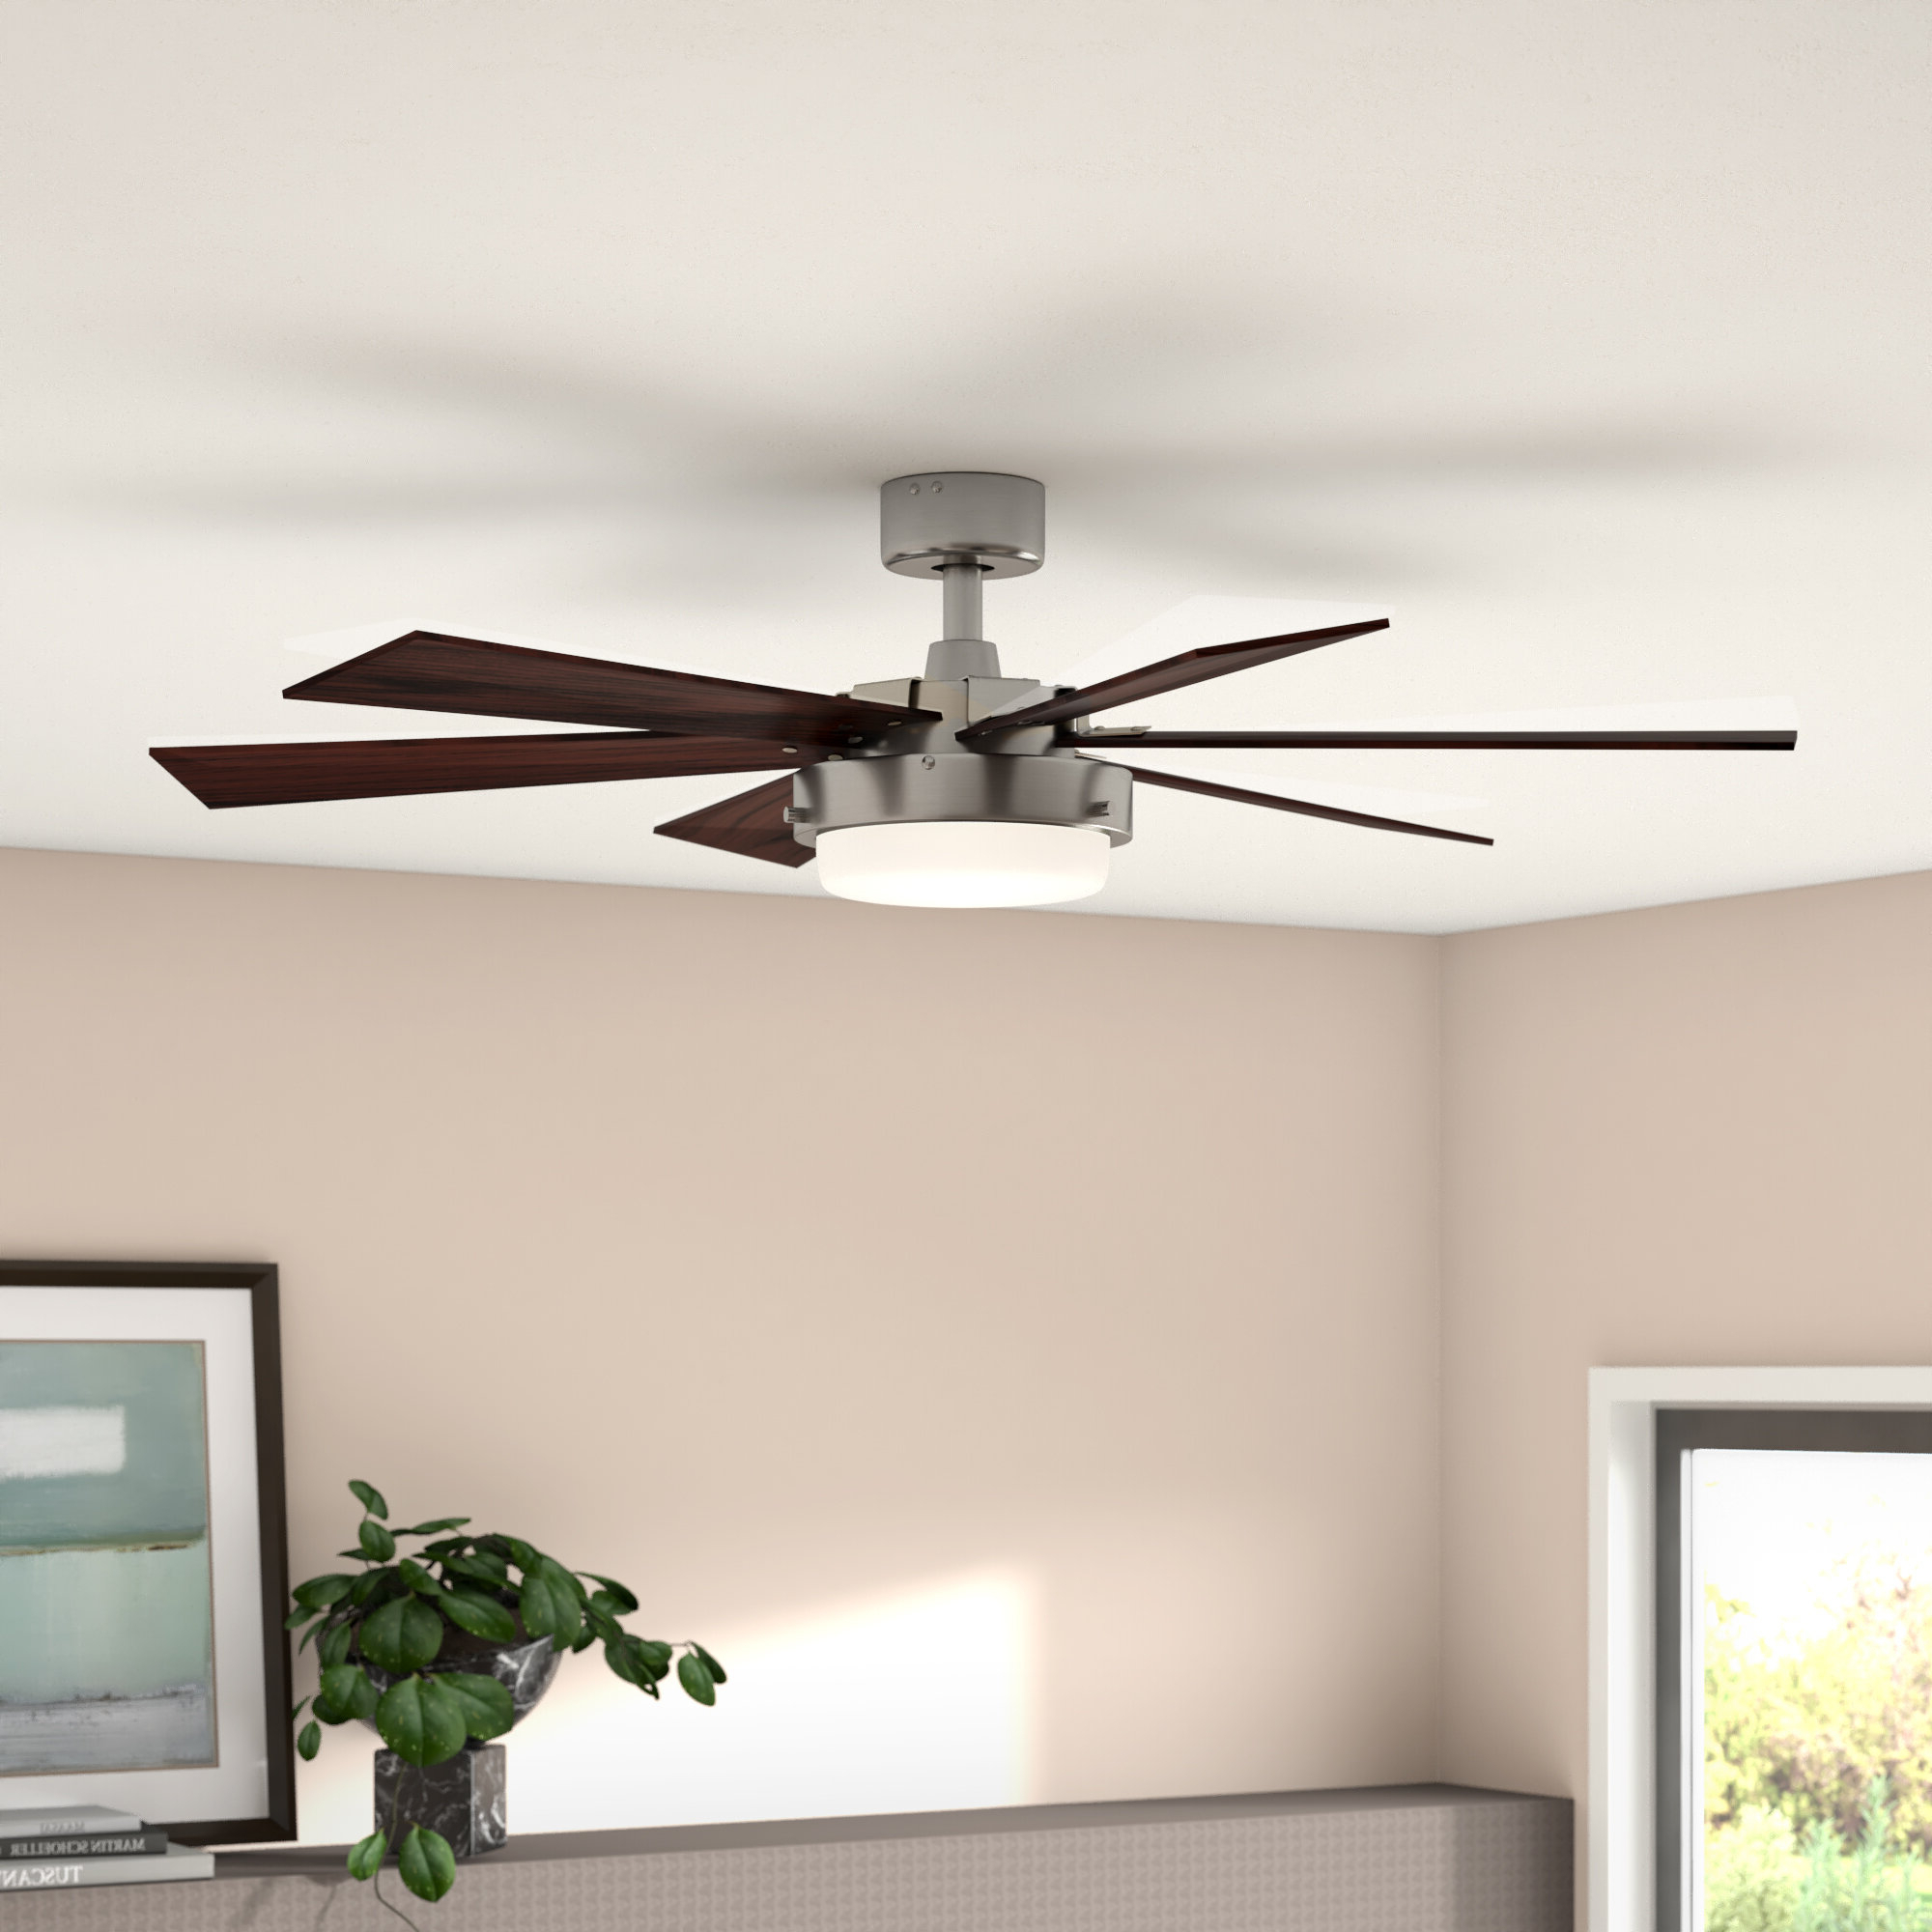 "Cillian 6 Blade Ceiling Fans In Best And Newest 52"" Corsa 6 Blade Ceiling Fan, Light Kit Included (View 6 of 20)"